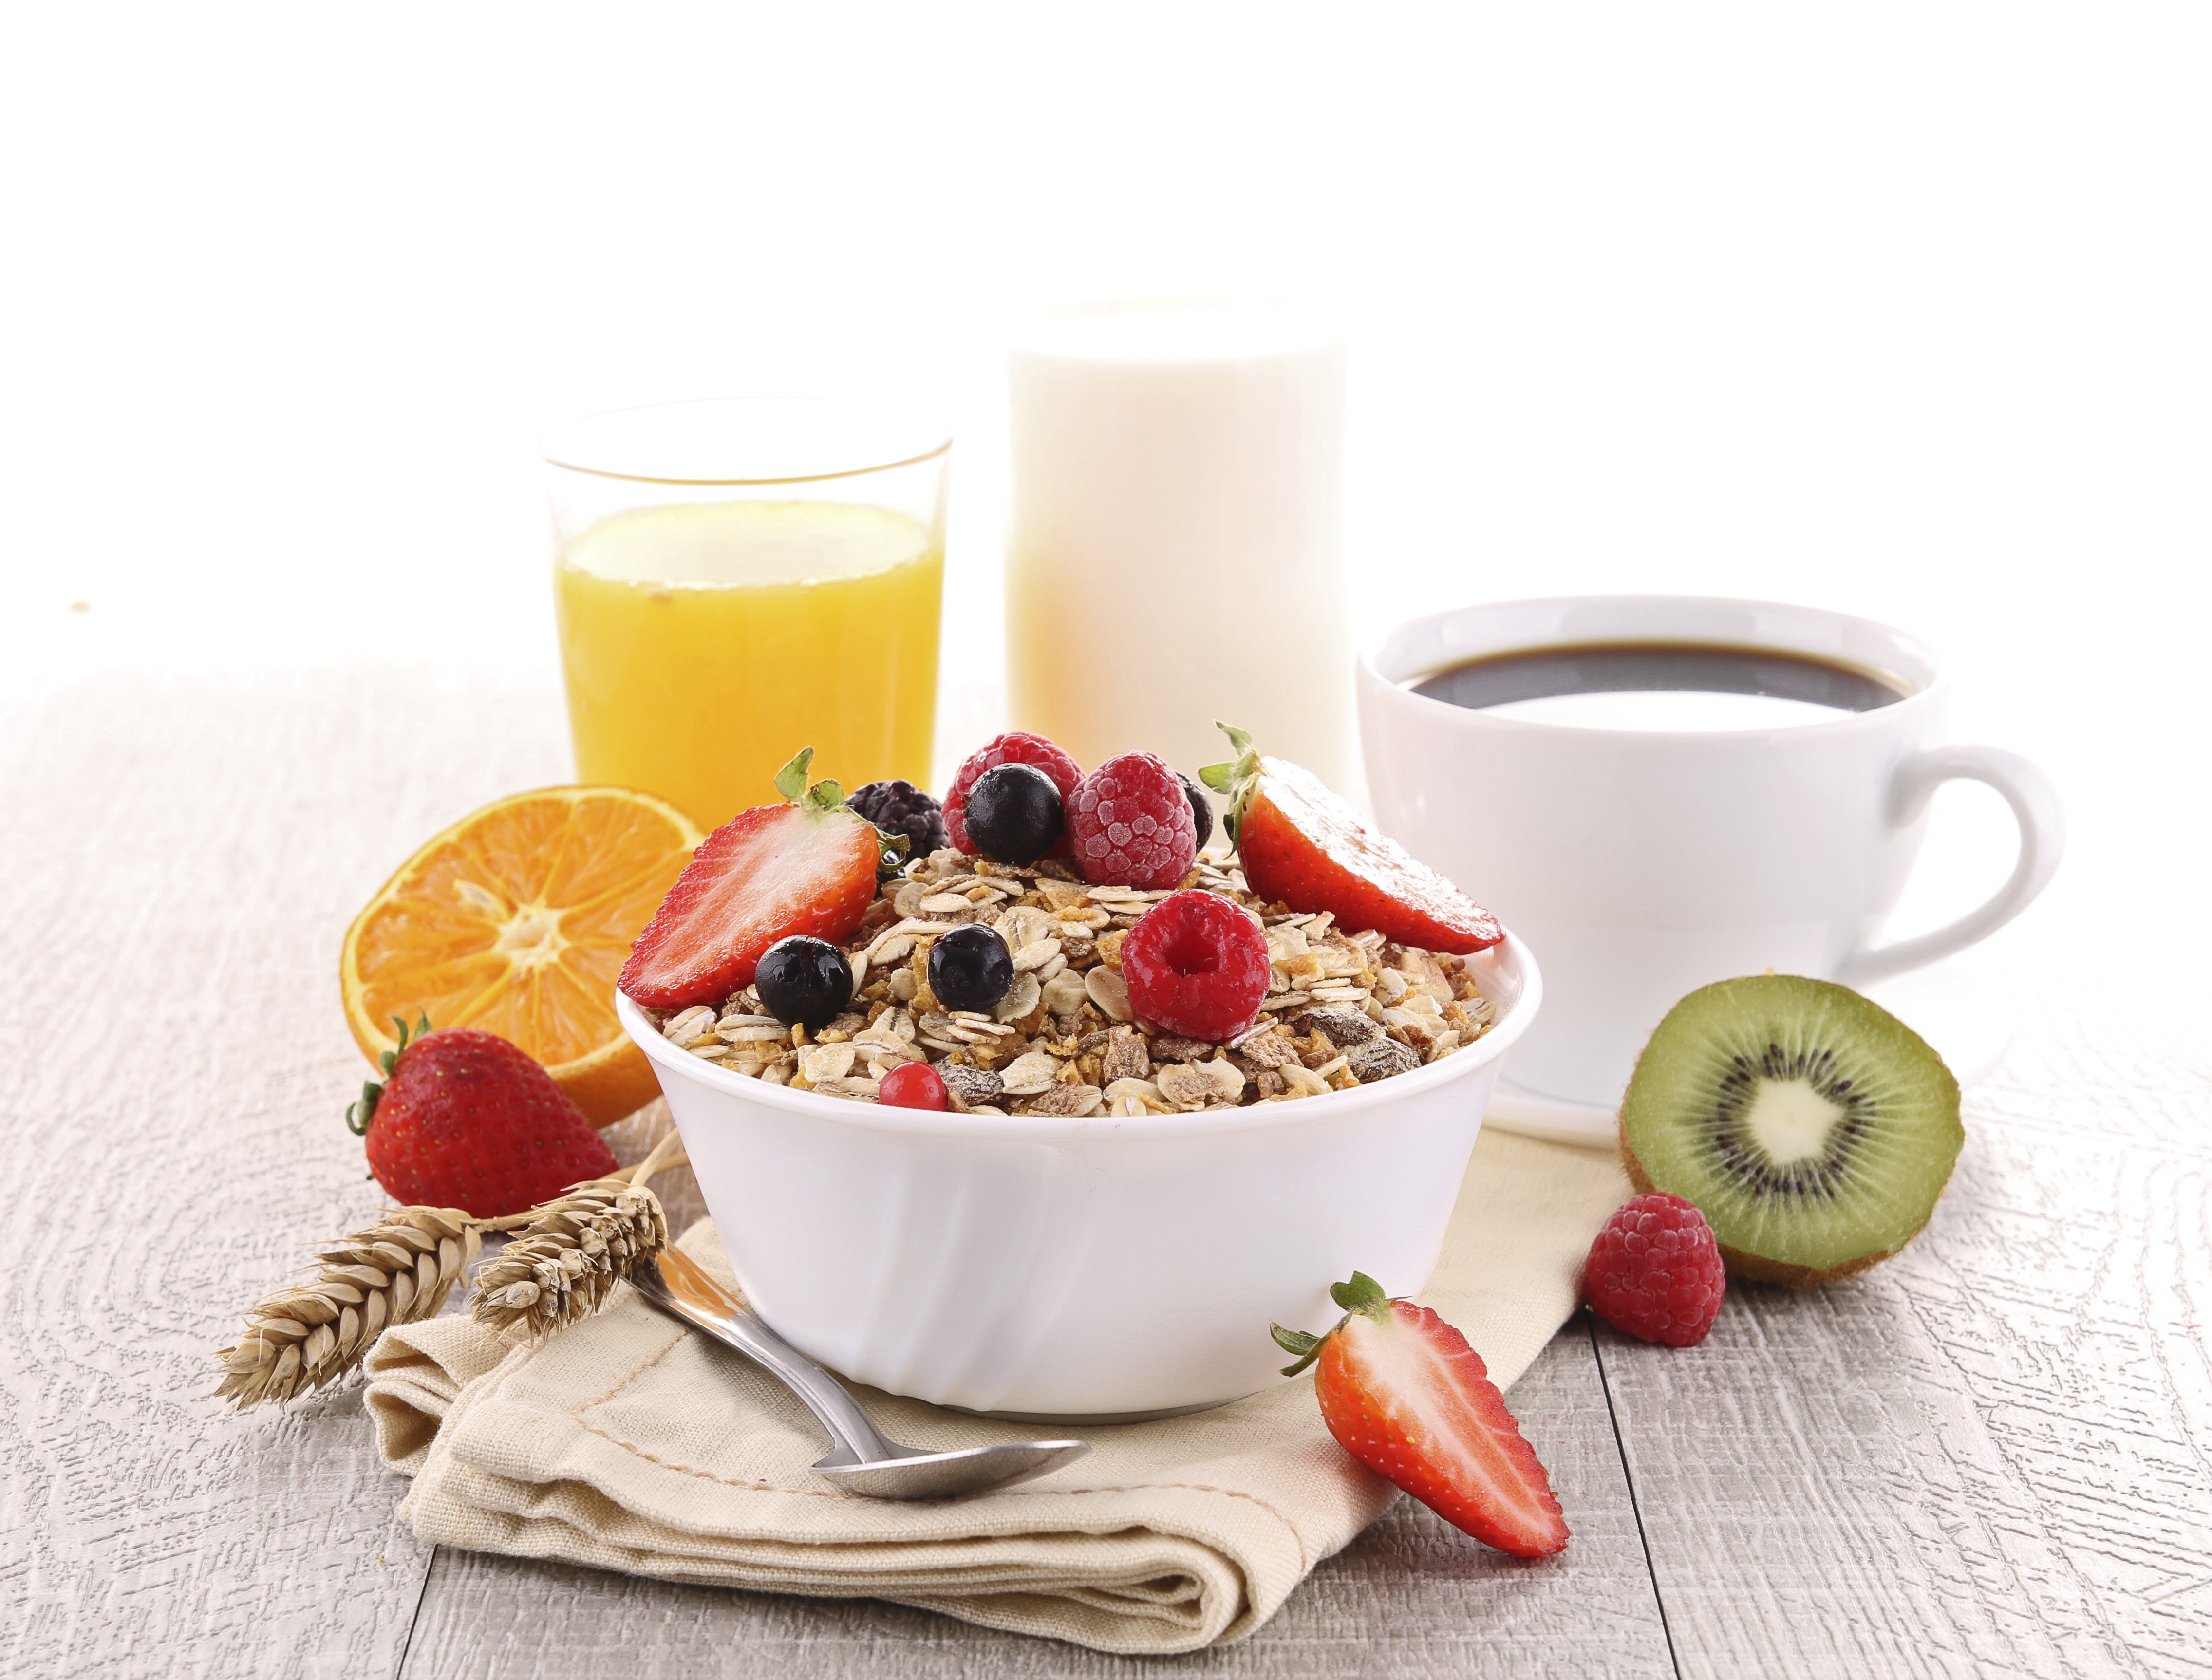 A Healthy Breakfast  Is there an ideal breakfast time that is more advantageous